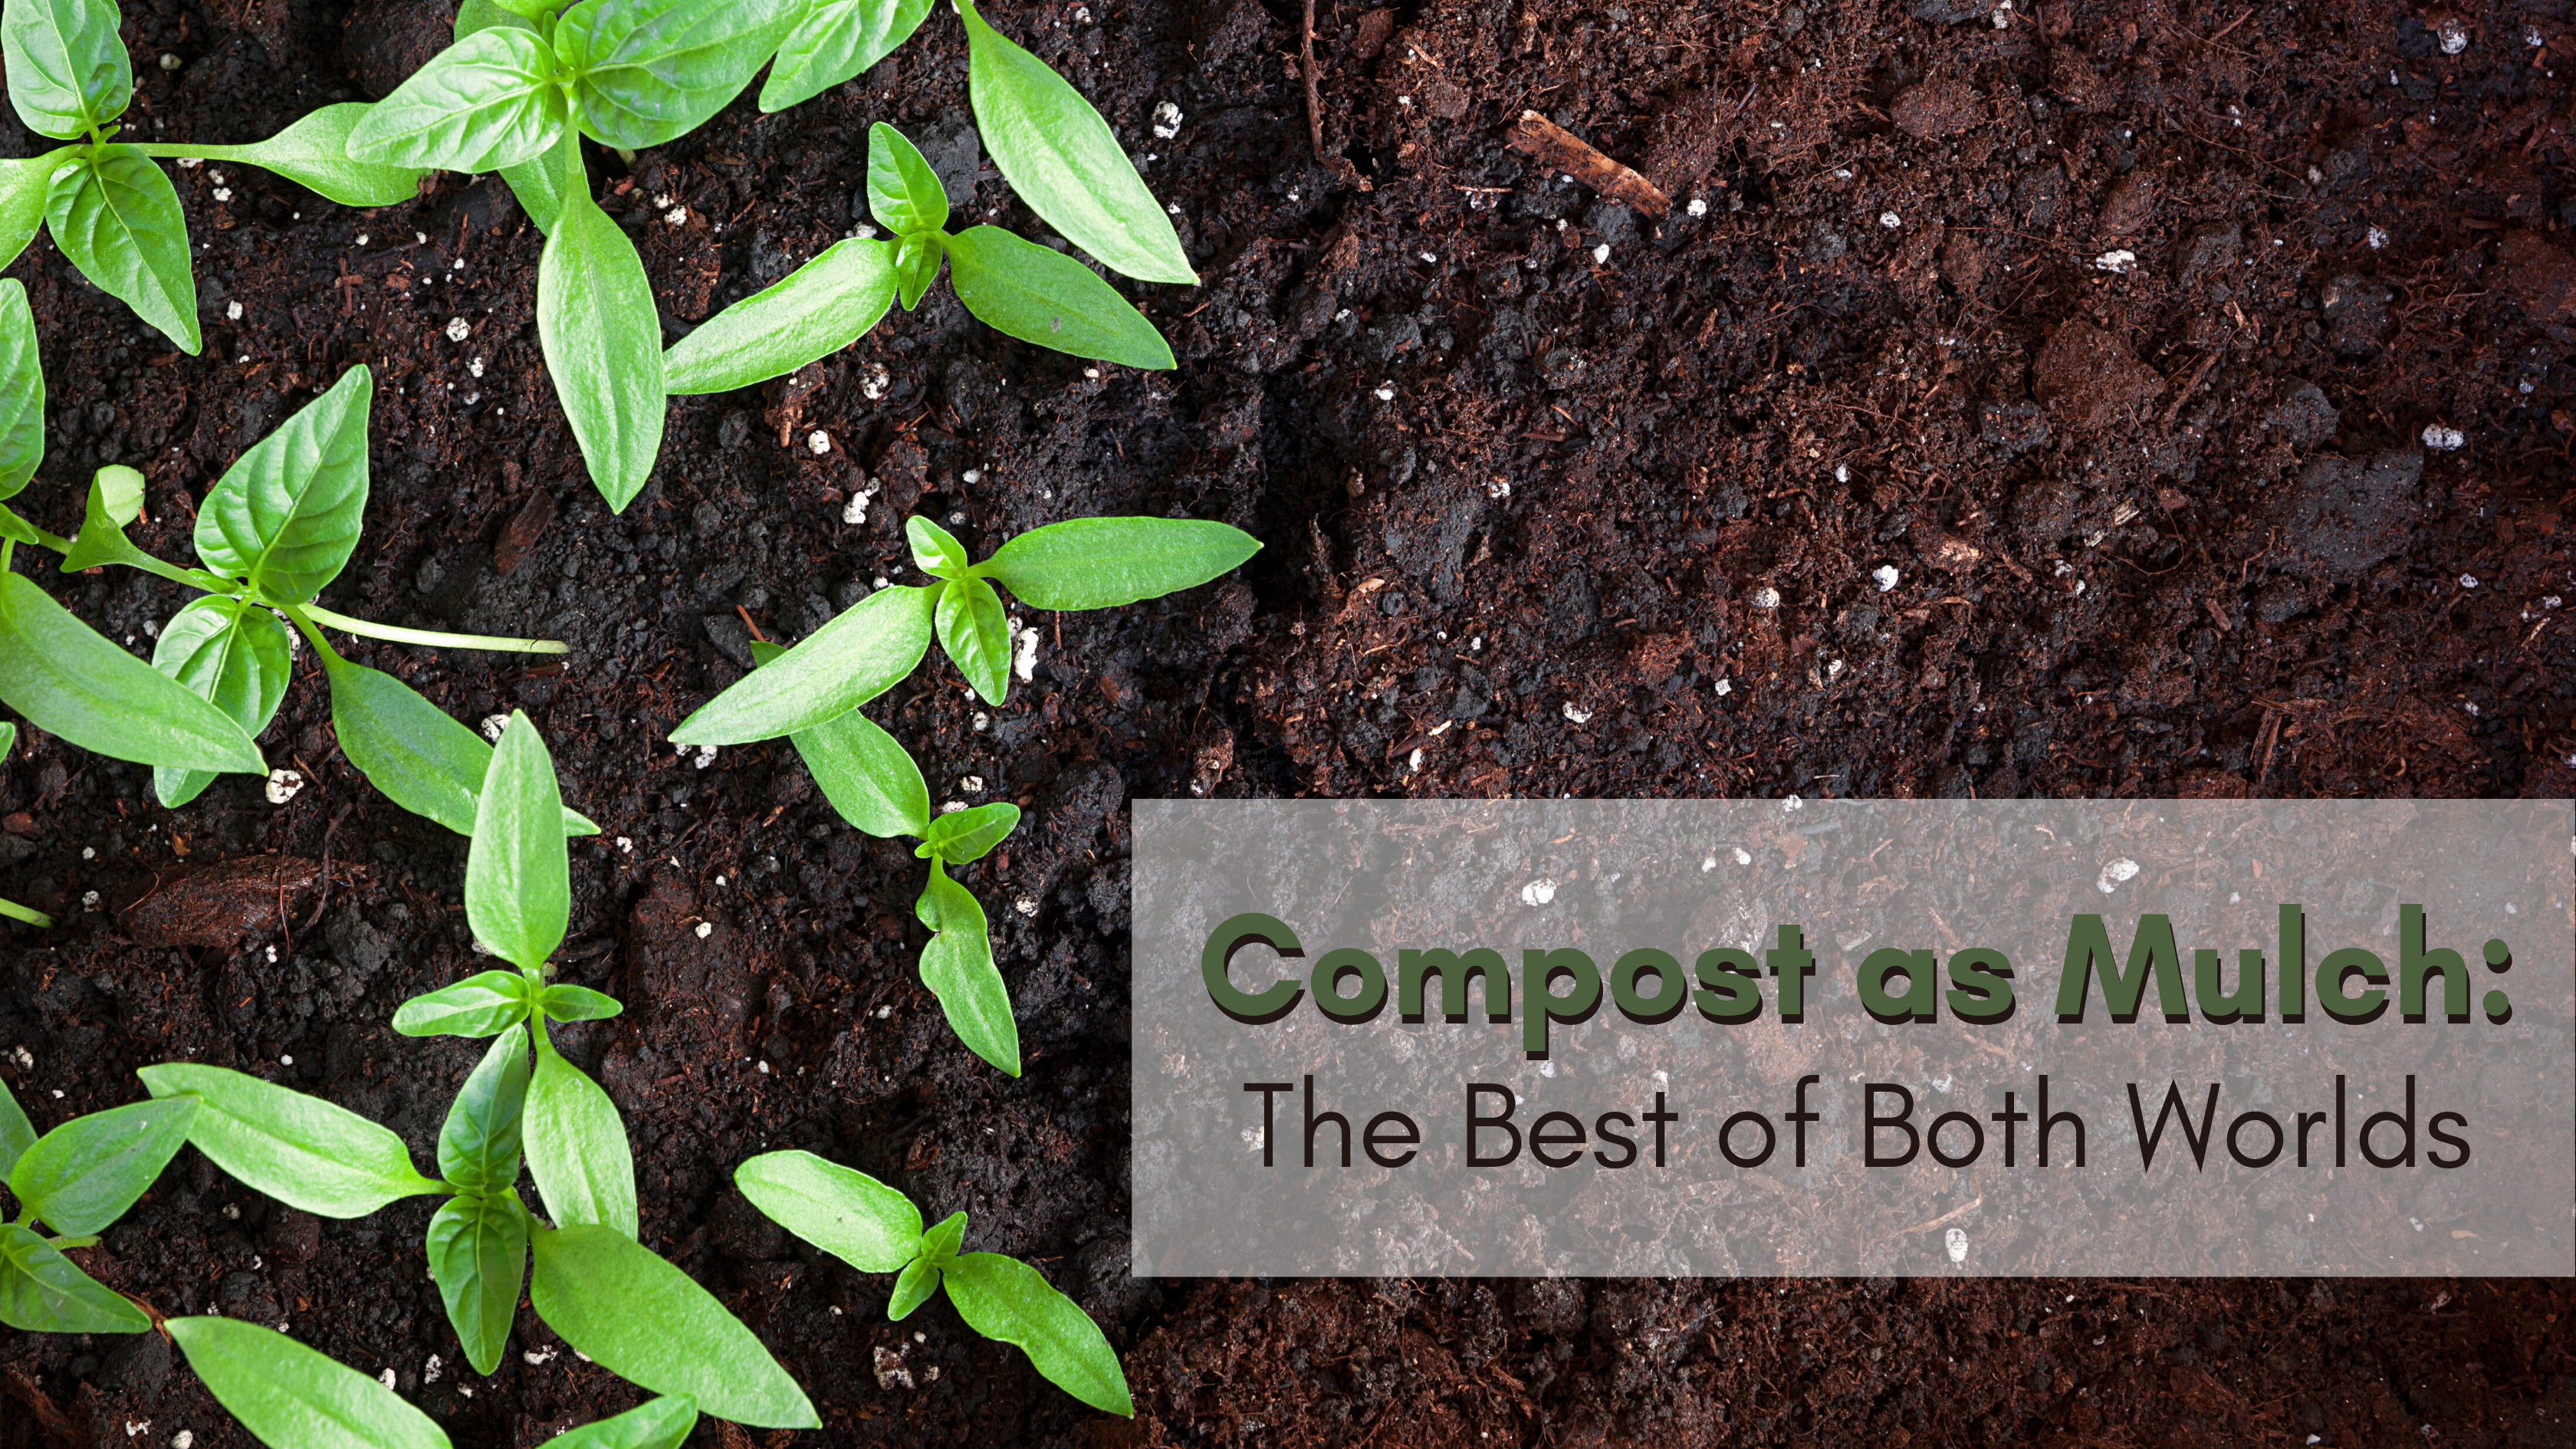 You can now have the best of both worlds at Beaver Lakes Nursery...compost as mulch!